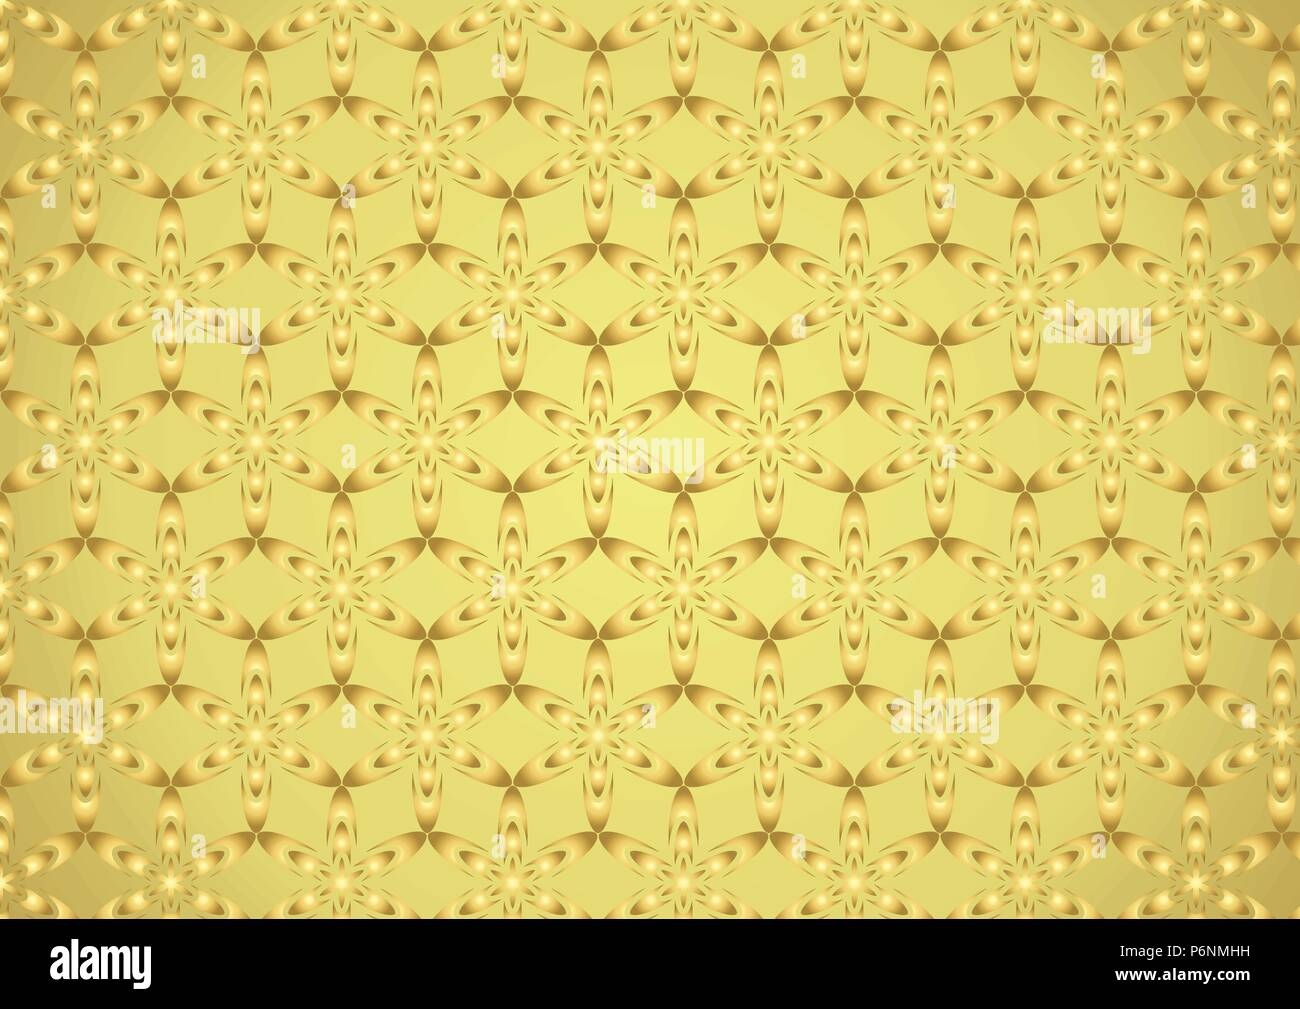 Gold Graphic flower in modern shape pattern on pastel background. Sweet and classic pattern style for vintage or cute design Stock Vector